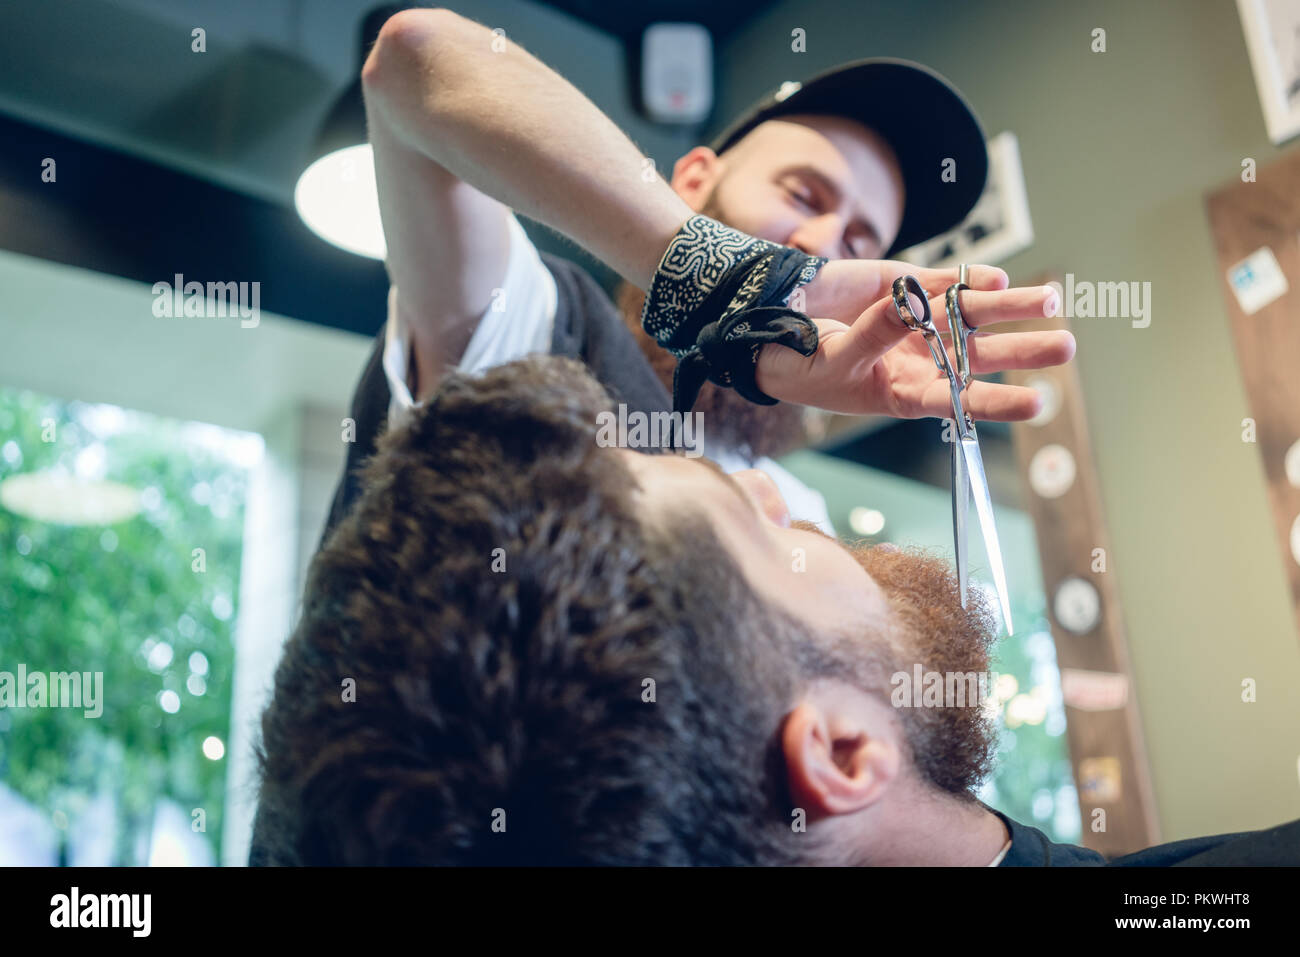 Close-up of the hand of a barber using scissors while trimming - Stock Image